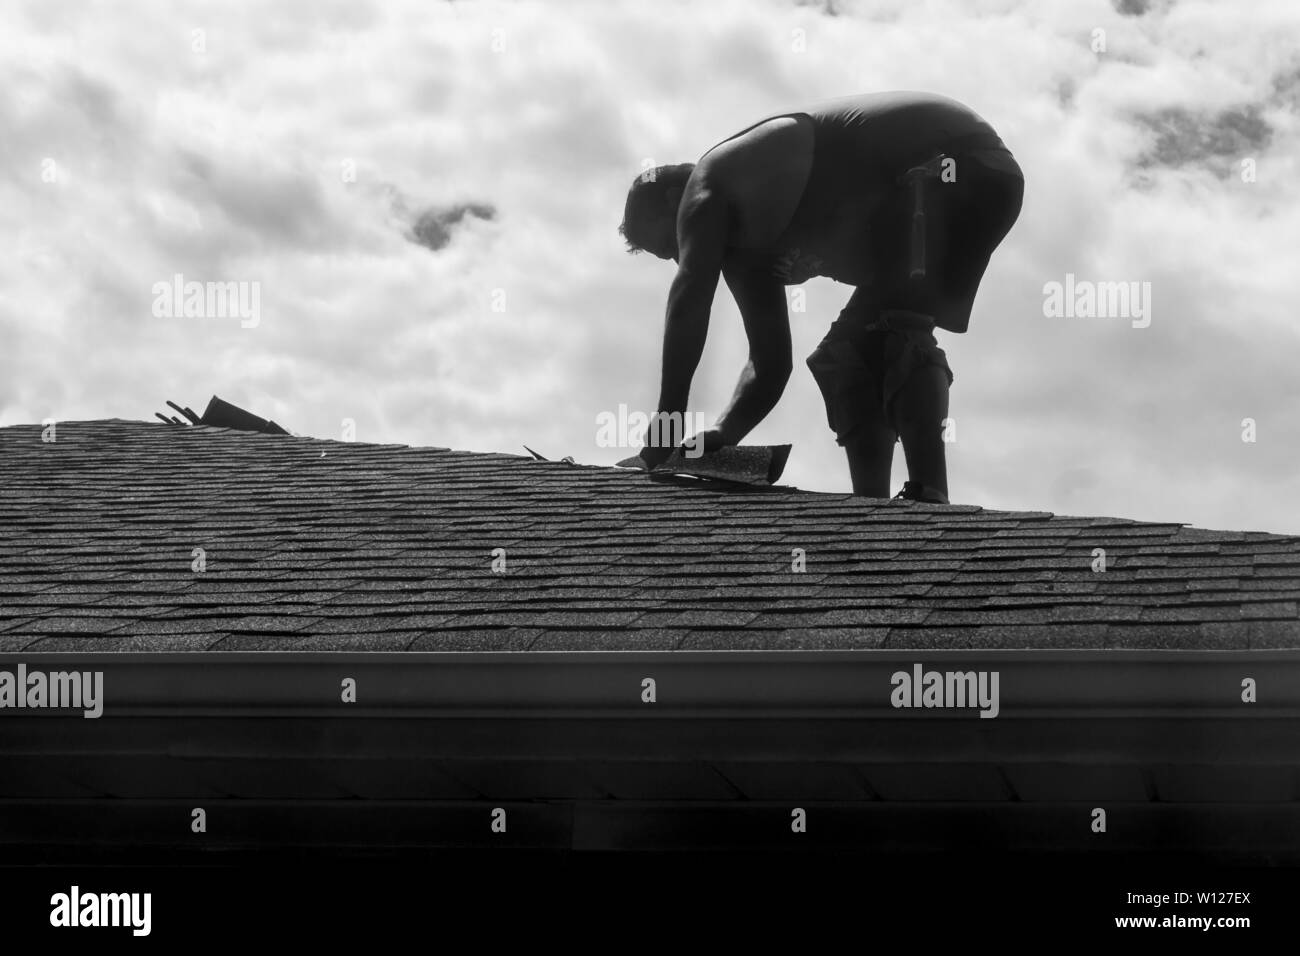 Toronto, Canada - One man replacing shingles on roof of a house Stock Photo